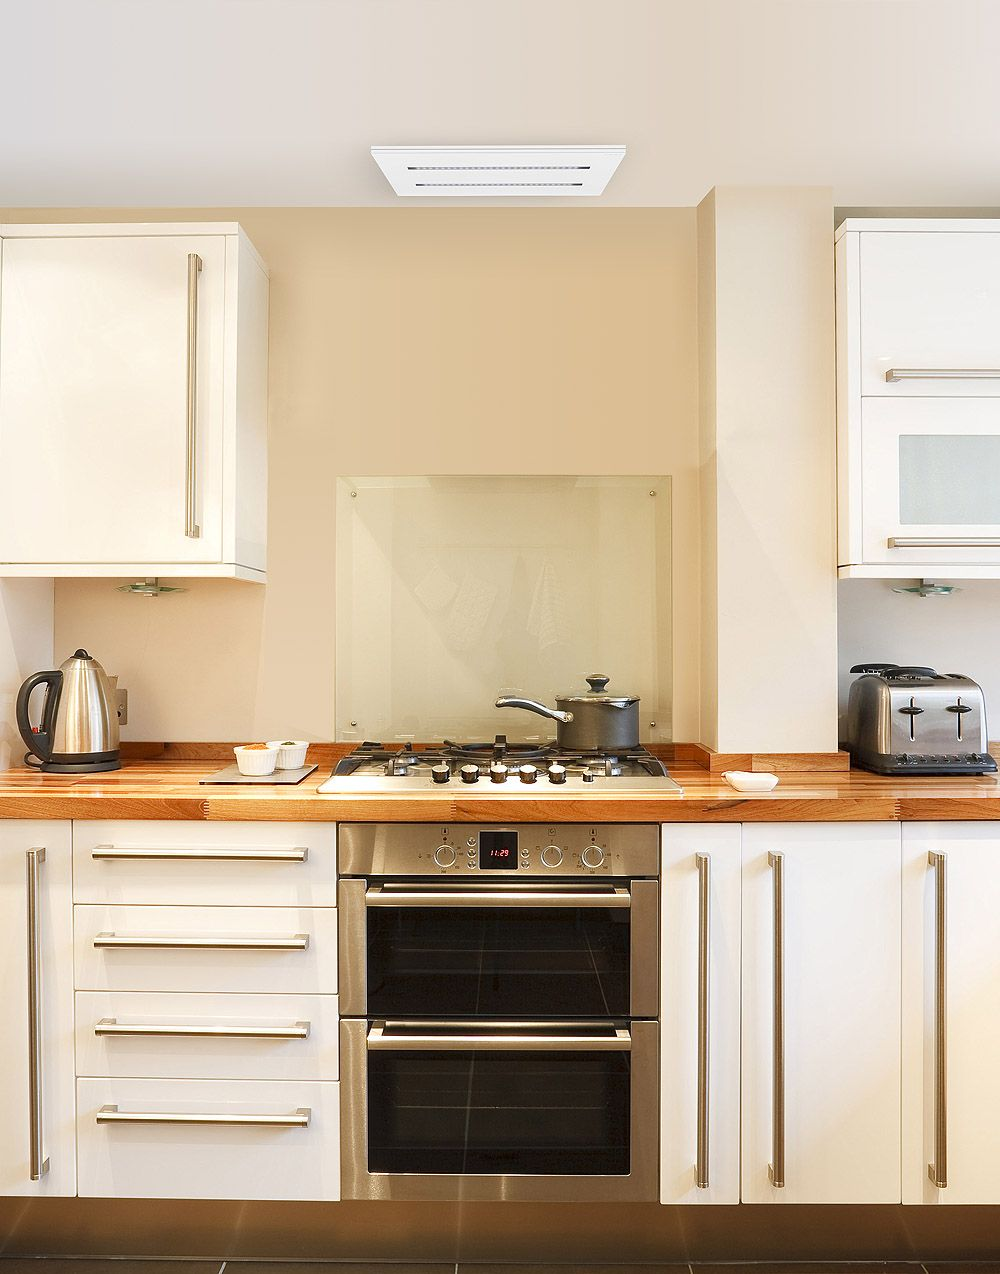 Lux Air LA350CE 35cm Ceiling Cooker Hood in Black, Stainless Steel or White 480m3hr Ducting Out Only